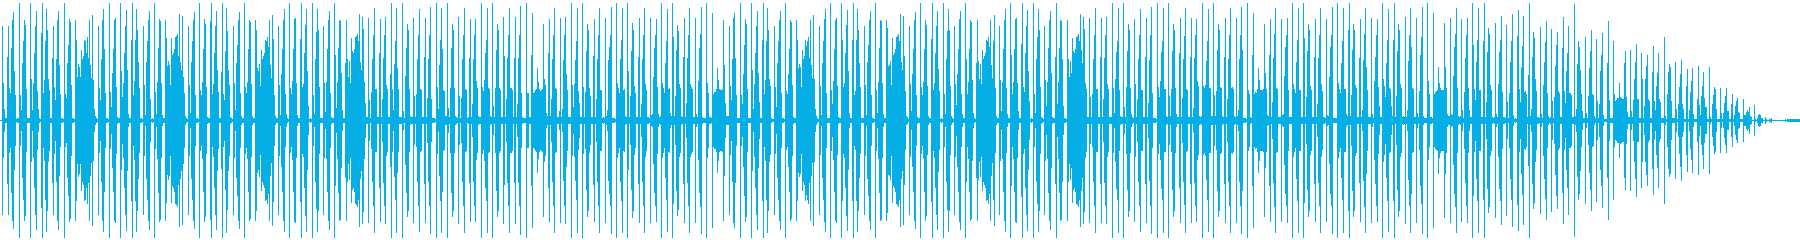 Comical and mysterious BGM's reproduced waveform